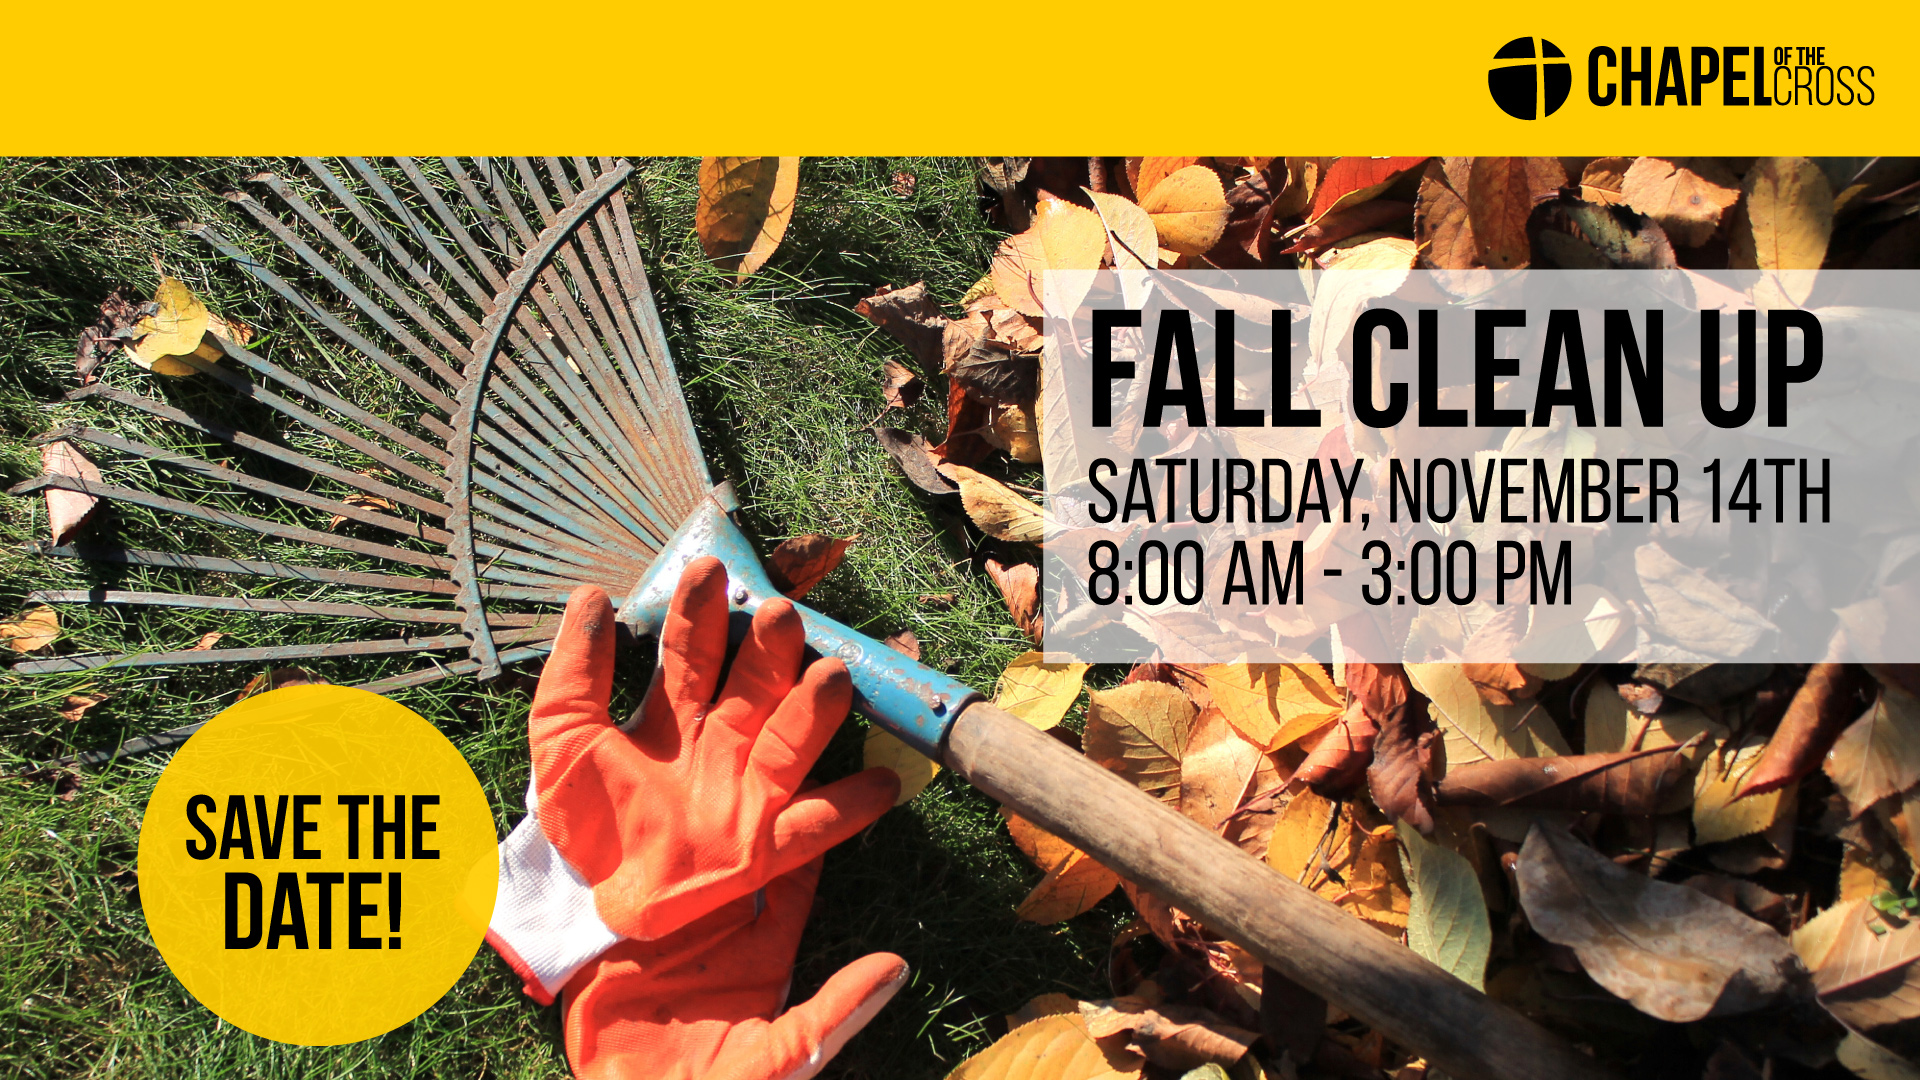 Fall-Clean-Up image